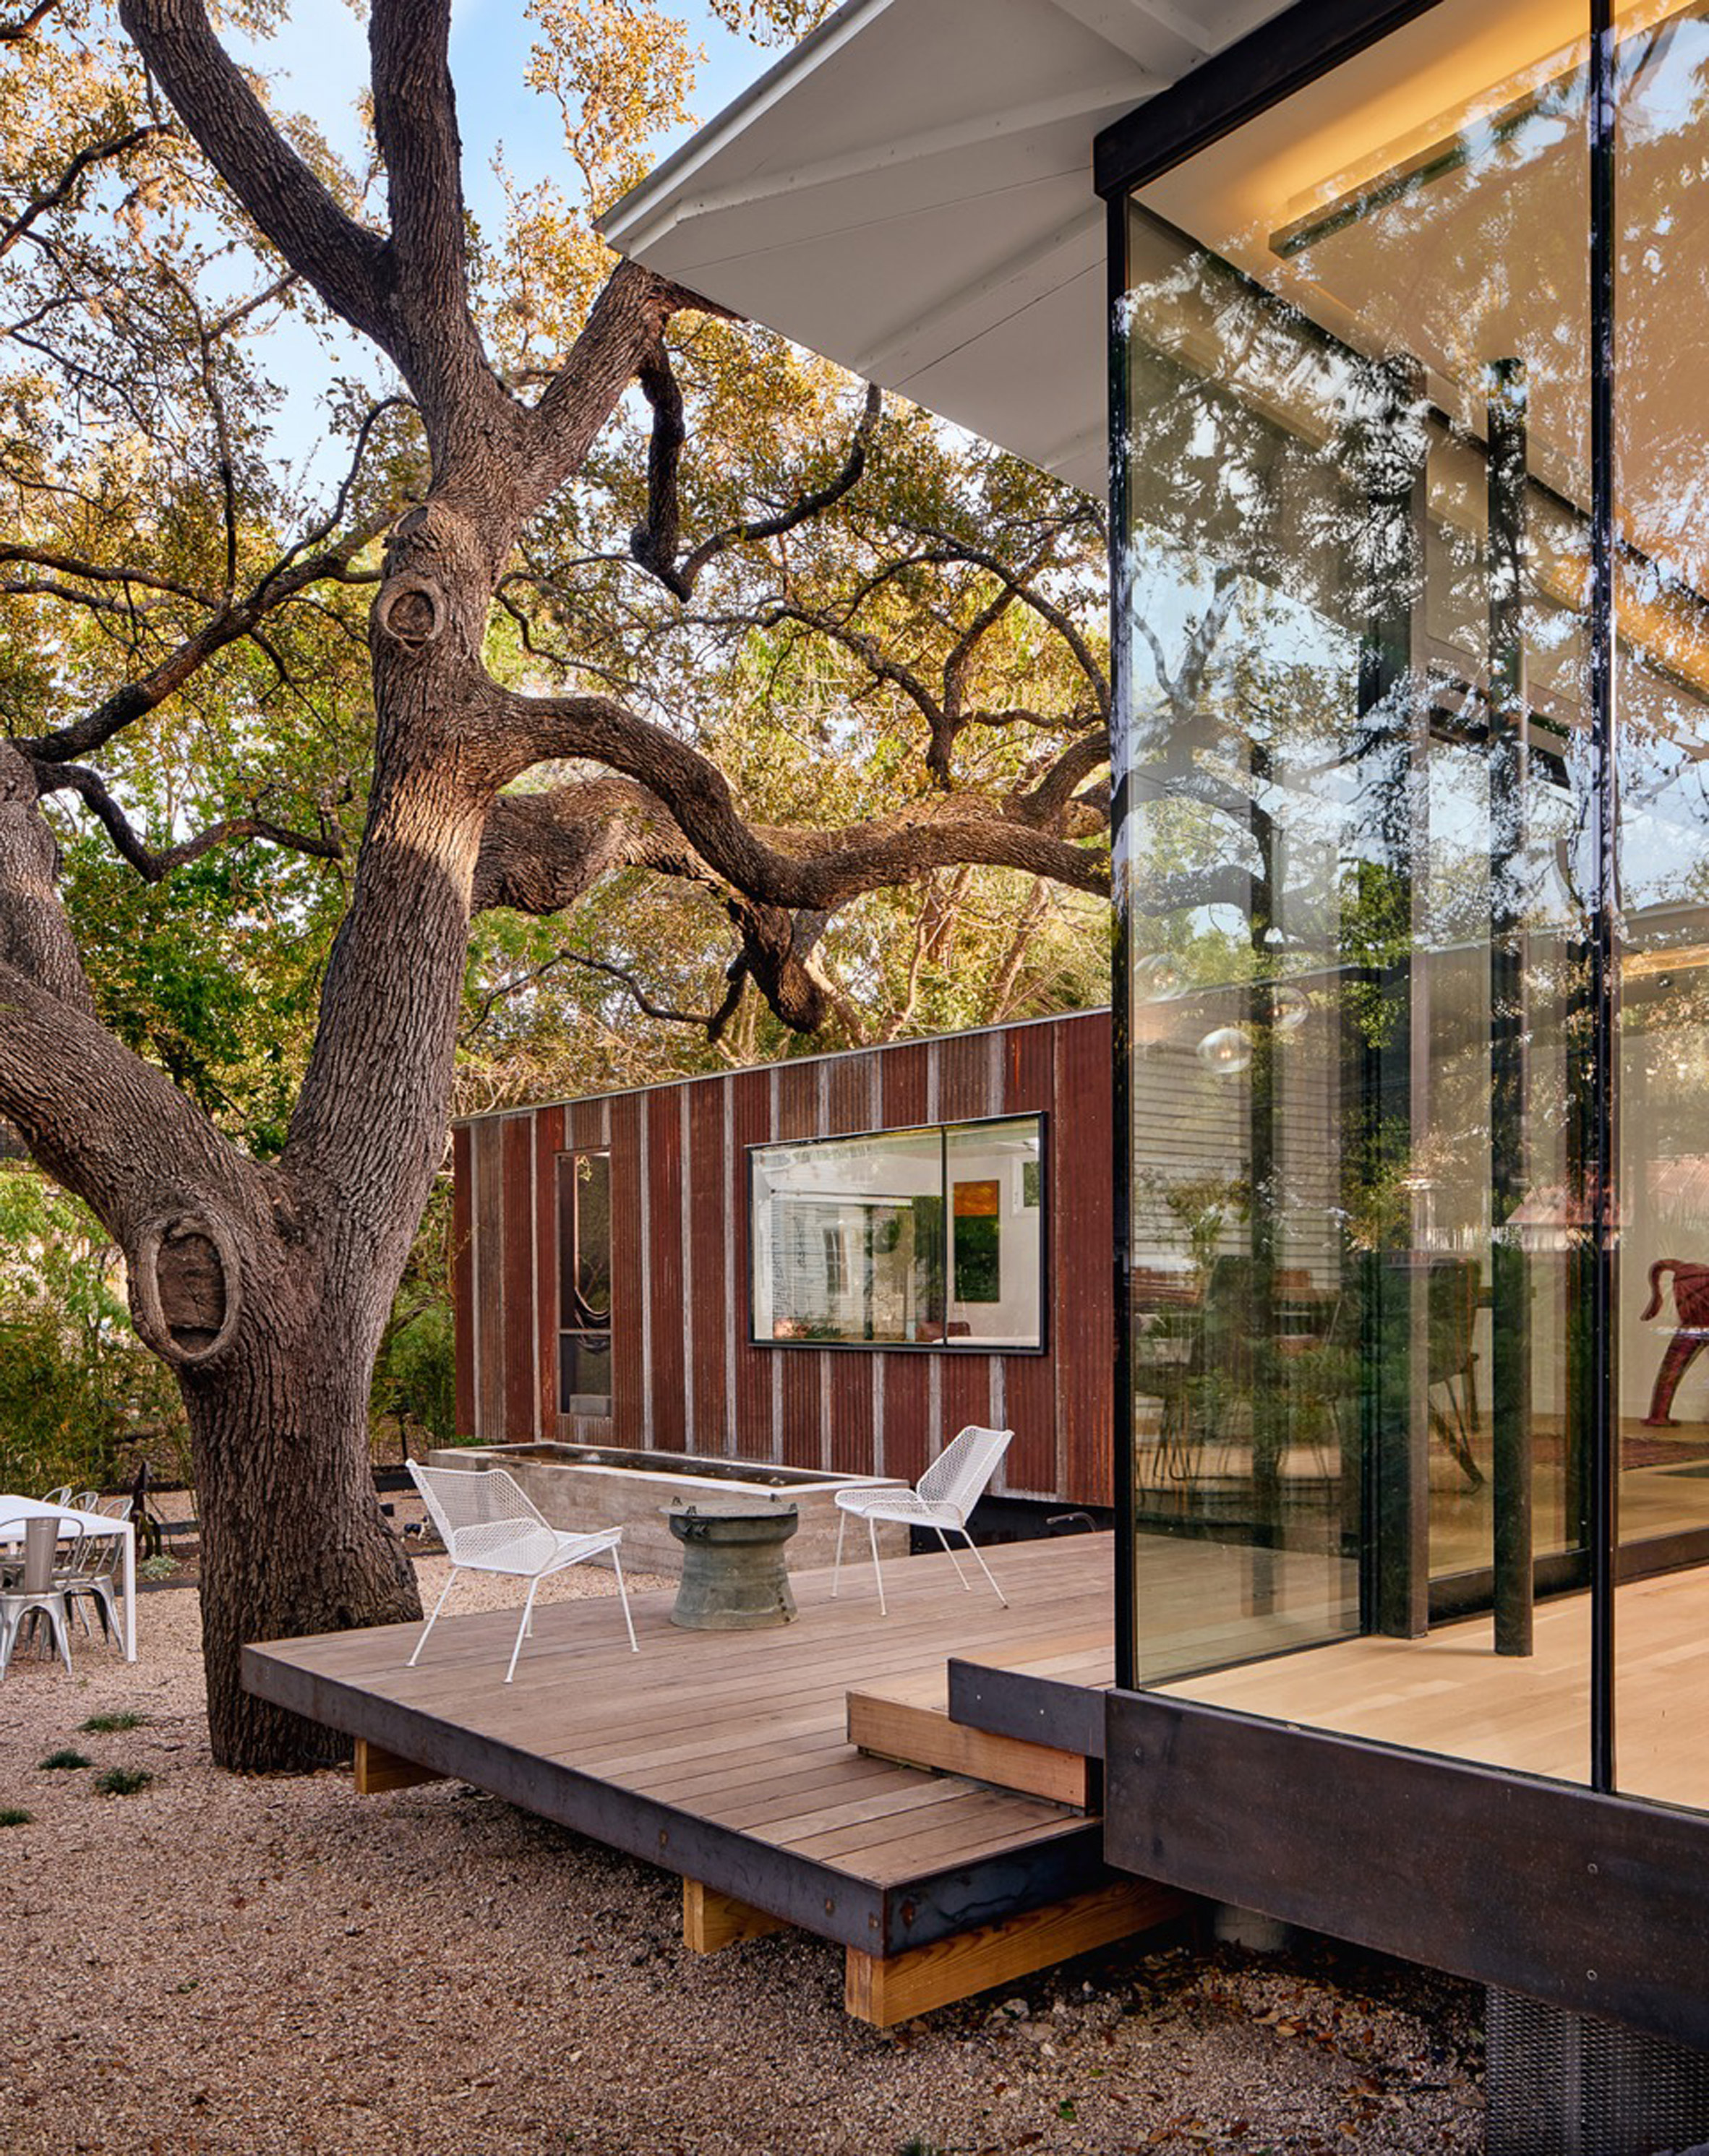 Nick Deaver enlarges 1930s cottage in Austin with glass and metal additions